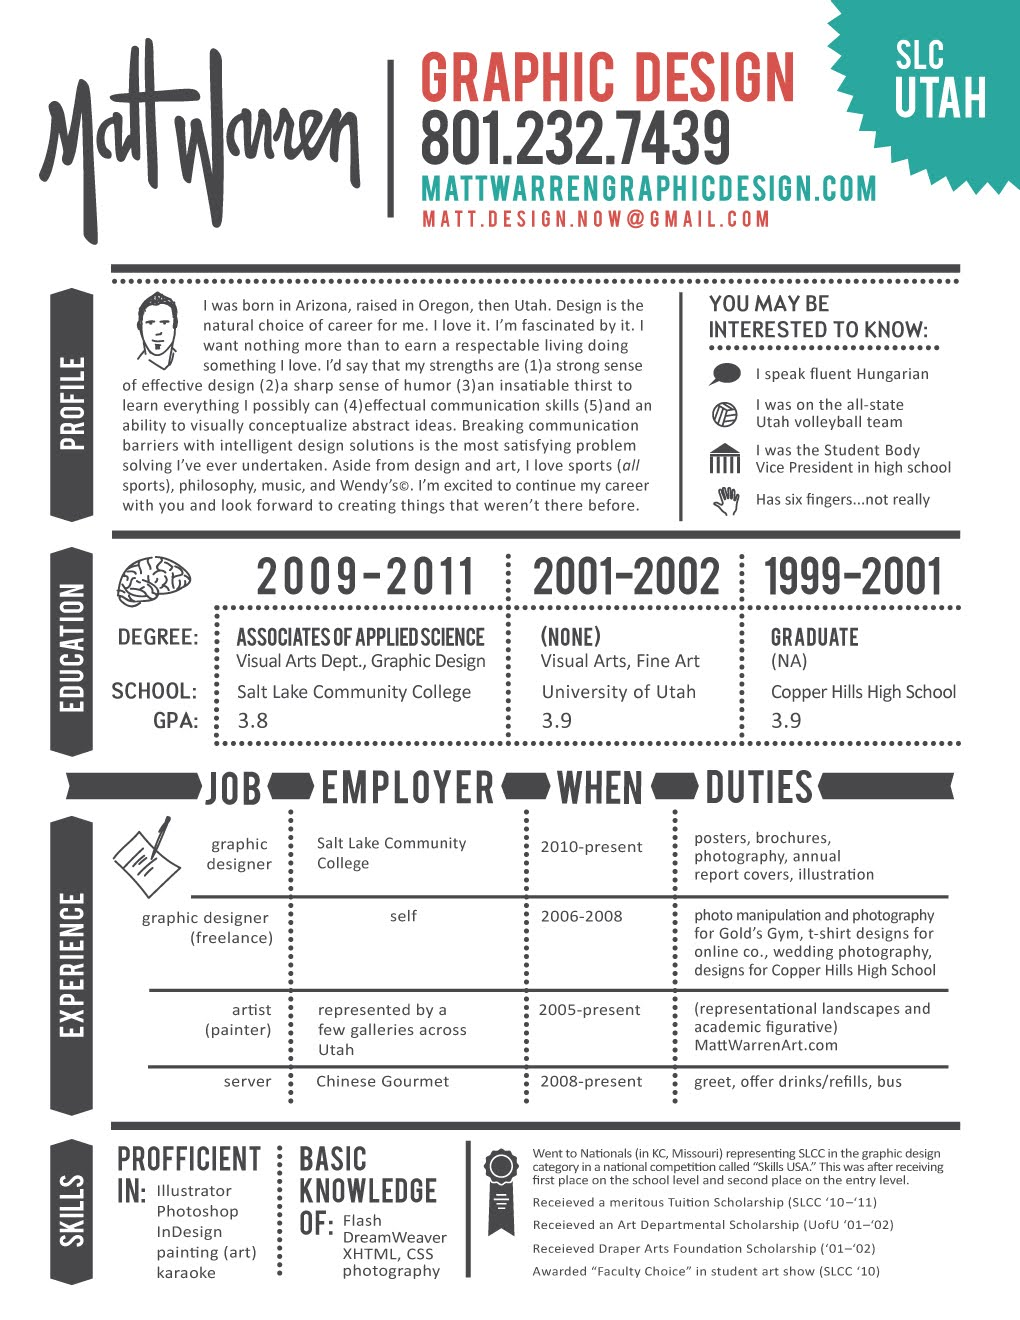 Resume Best Graphic Design Resumes find this pin and more on resumes creative graphic design 57 best images about rsum aesthetics pinterest resume samples